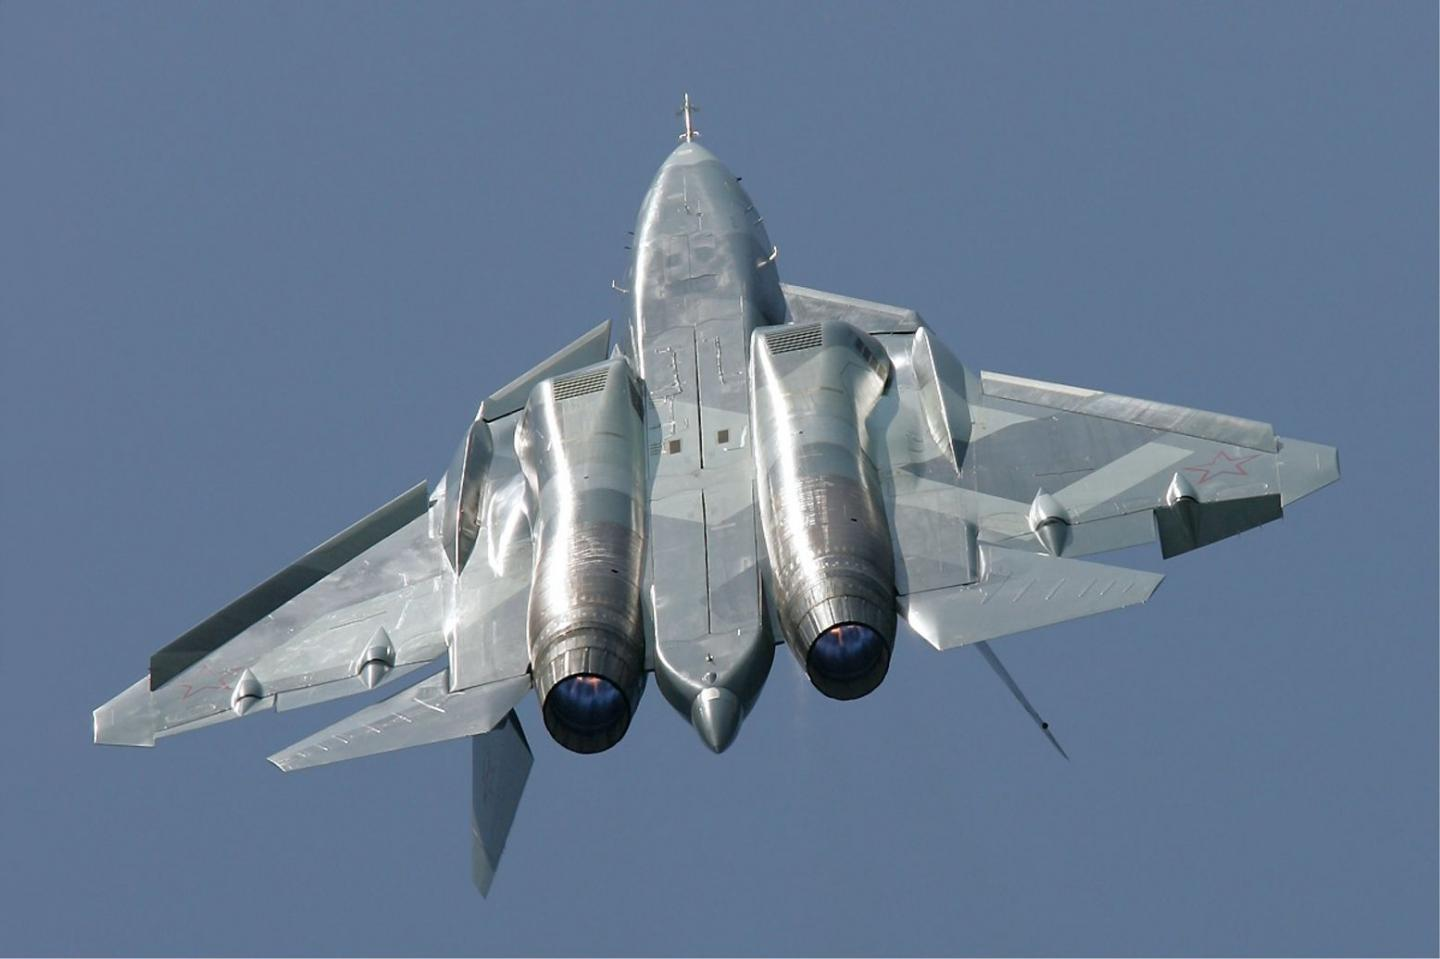 Russias Killer Su-57 Stealth Fighter and S-400 Headed to a NATO Member?